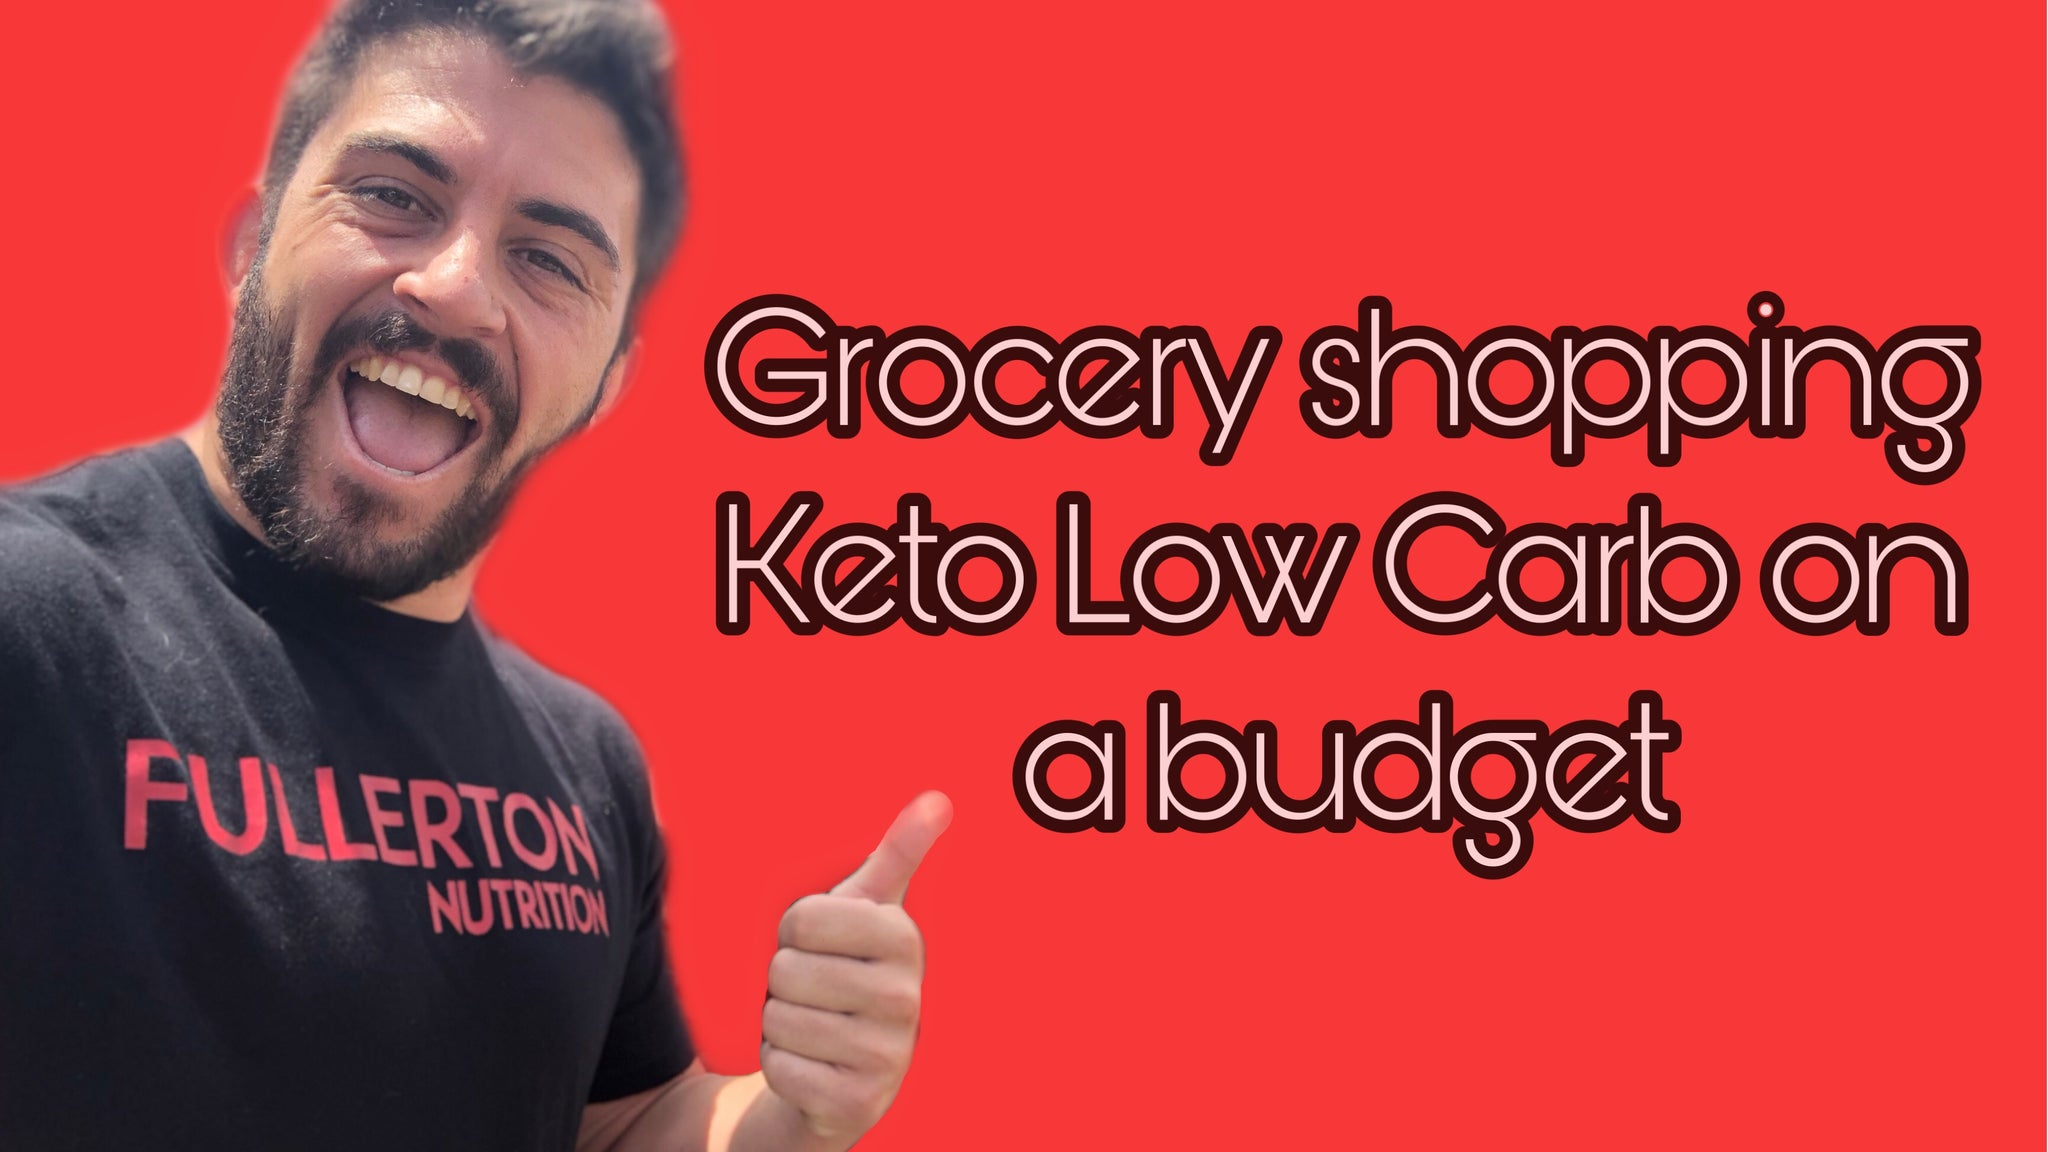 Eating Keto Low Carb on a budget: Grocery shopping tripe 14 Meals under $20